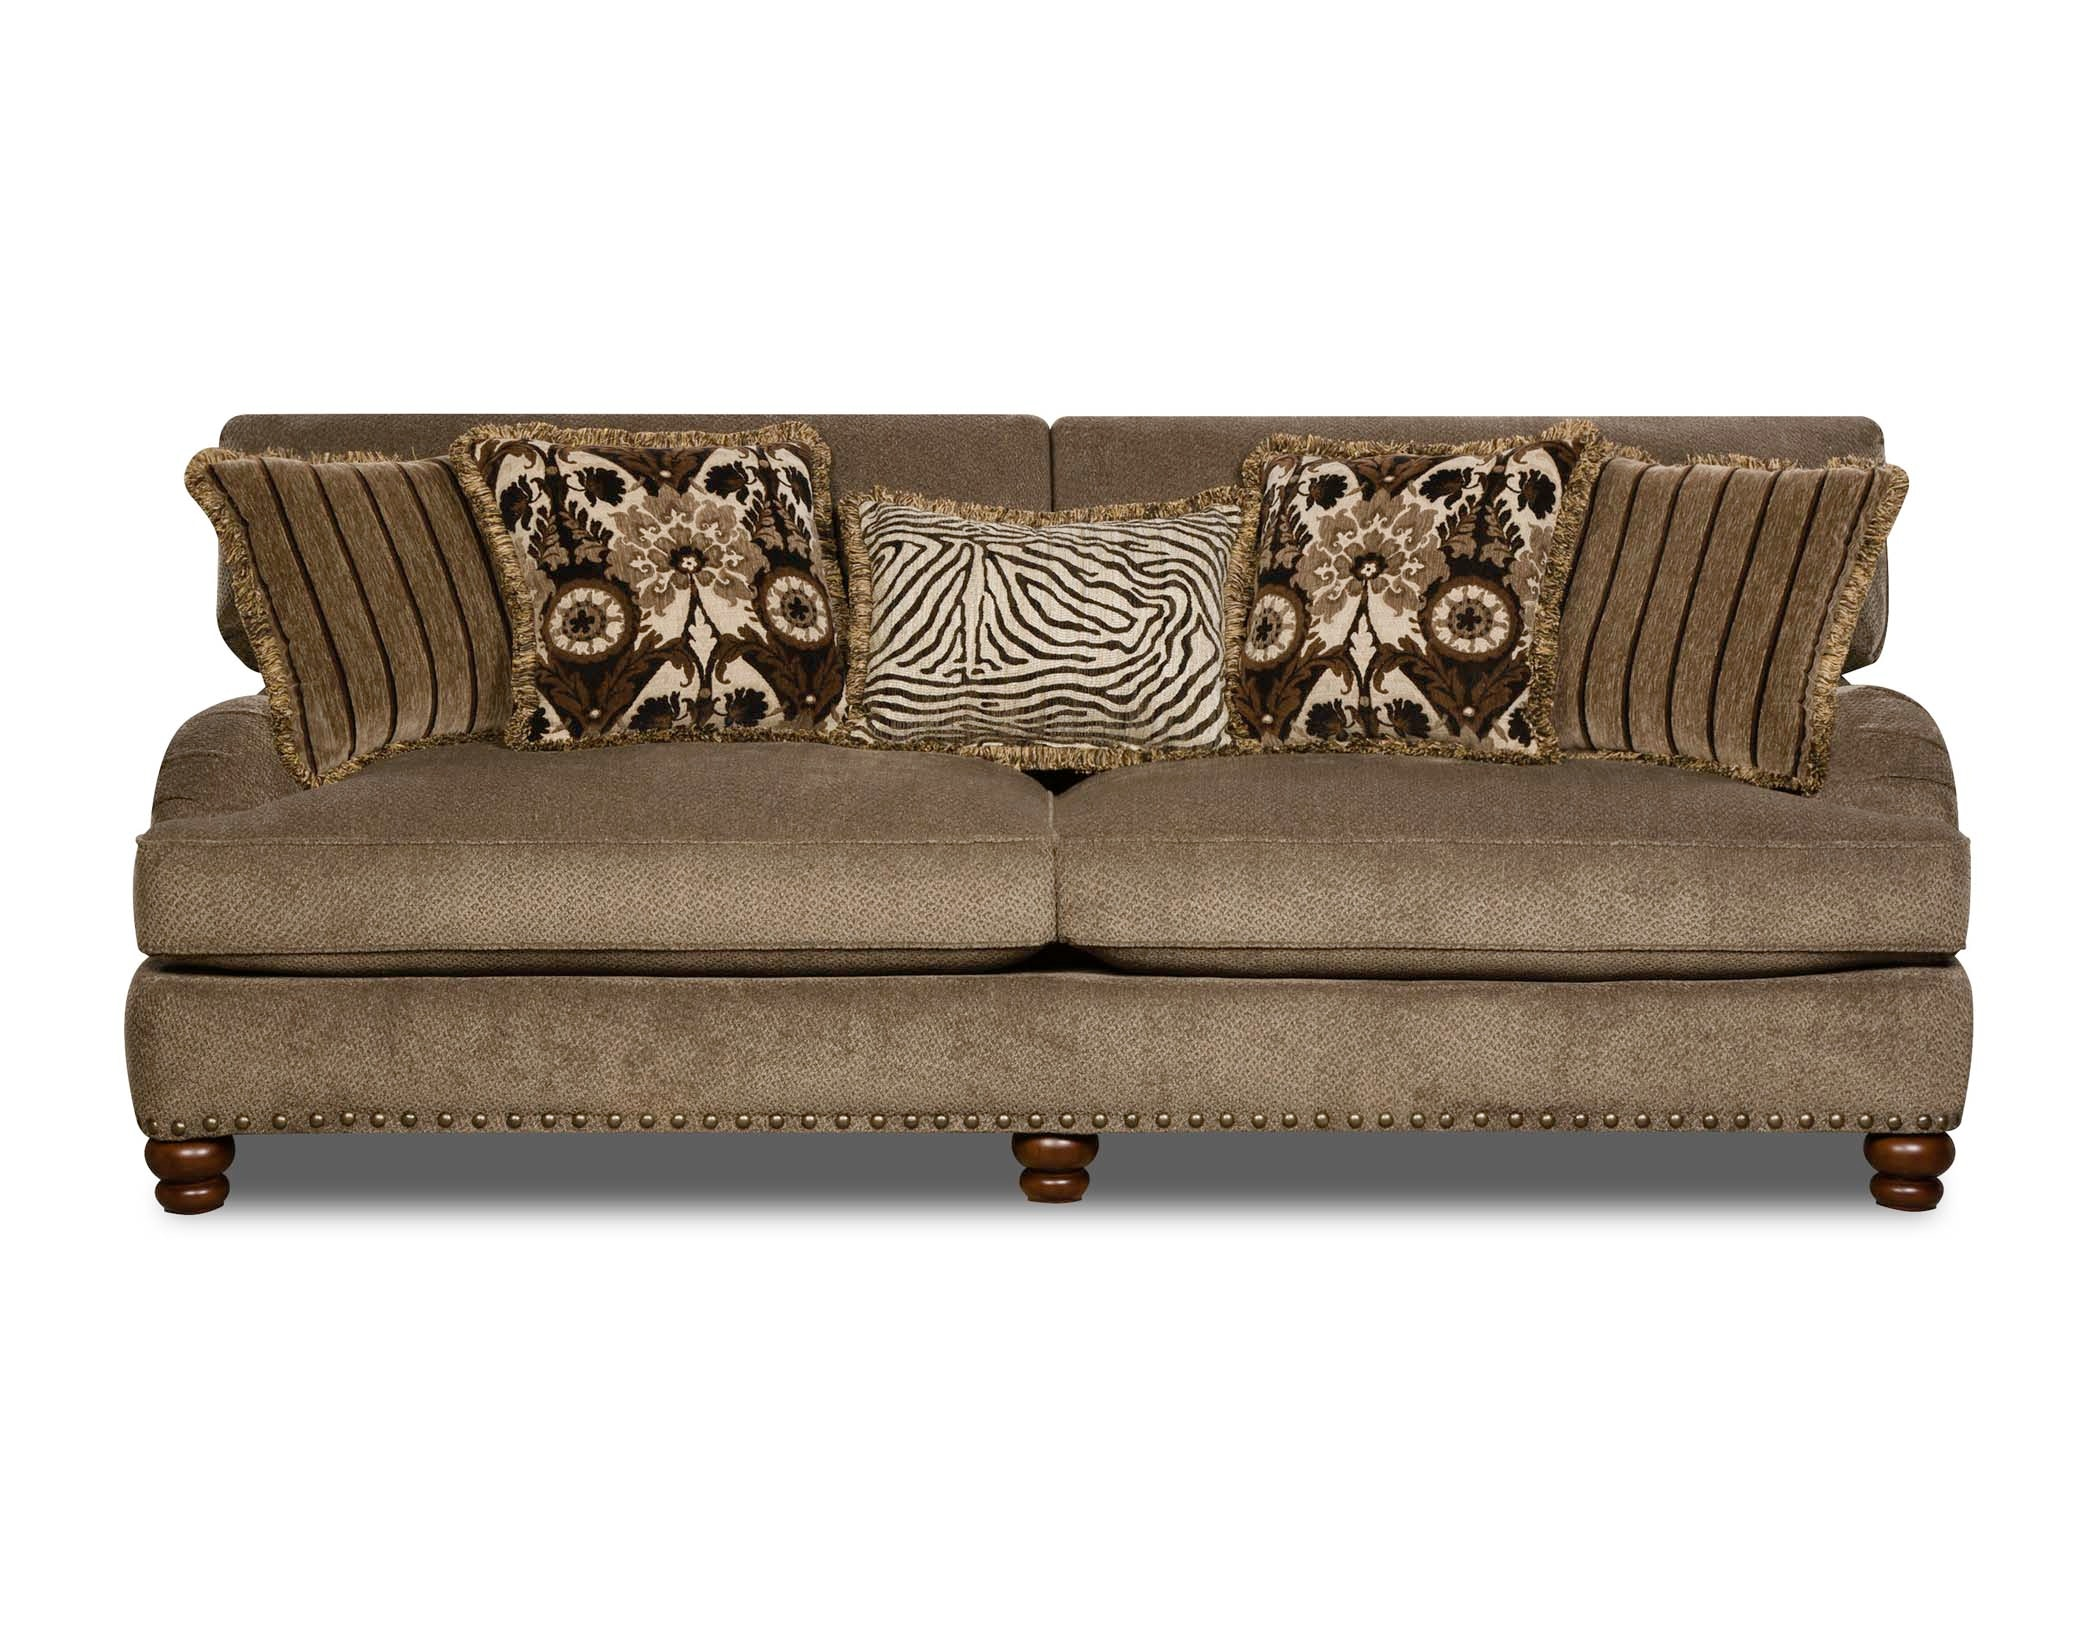 Corinthian Prodigy Sofa On Sale At Elgin Furniture In Euclid, Cleveland  Heights, U0026 North Randall